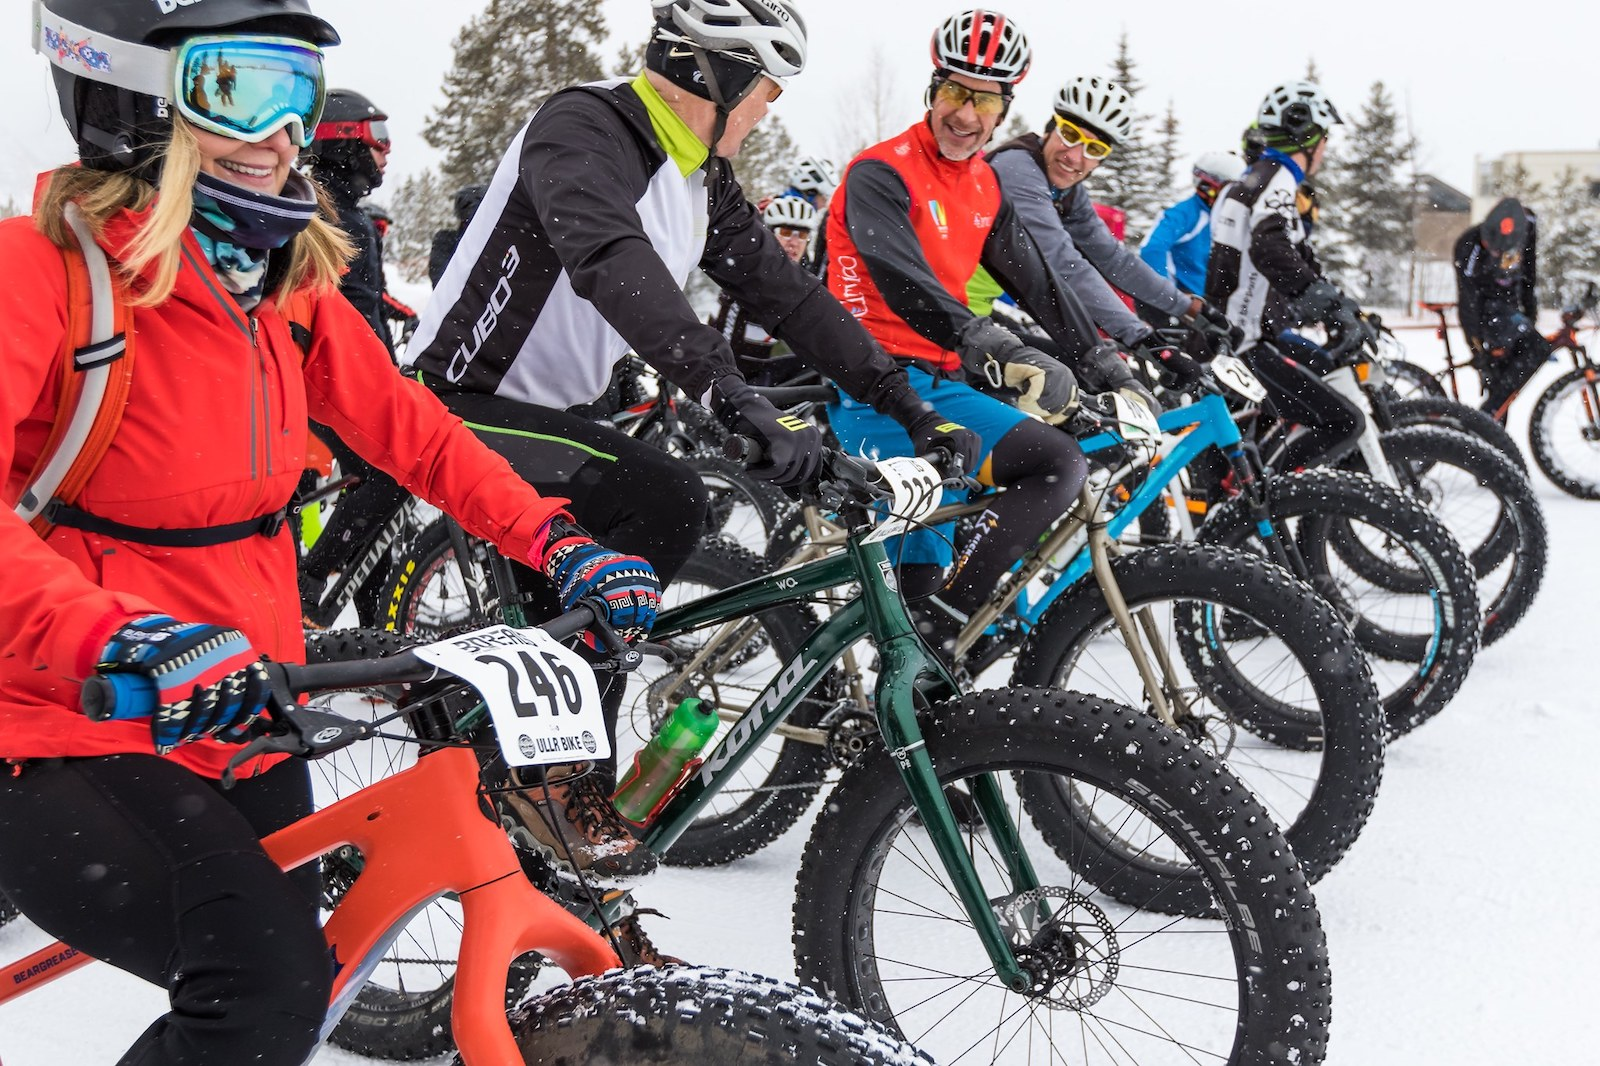 Image of people at the Frisco Freeze Winter Fat Bike Race in Colorado